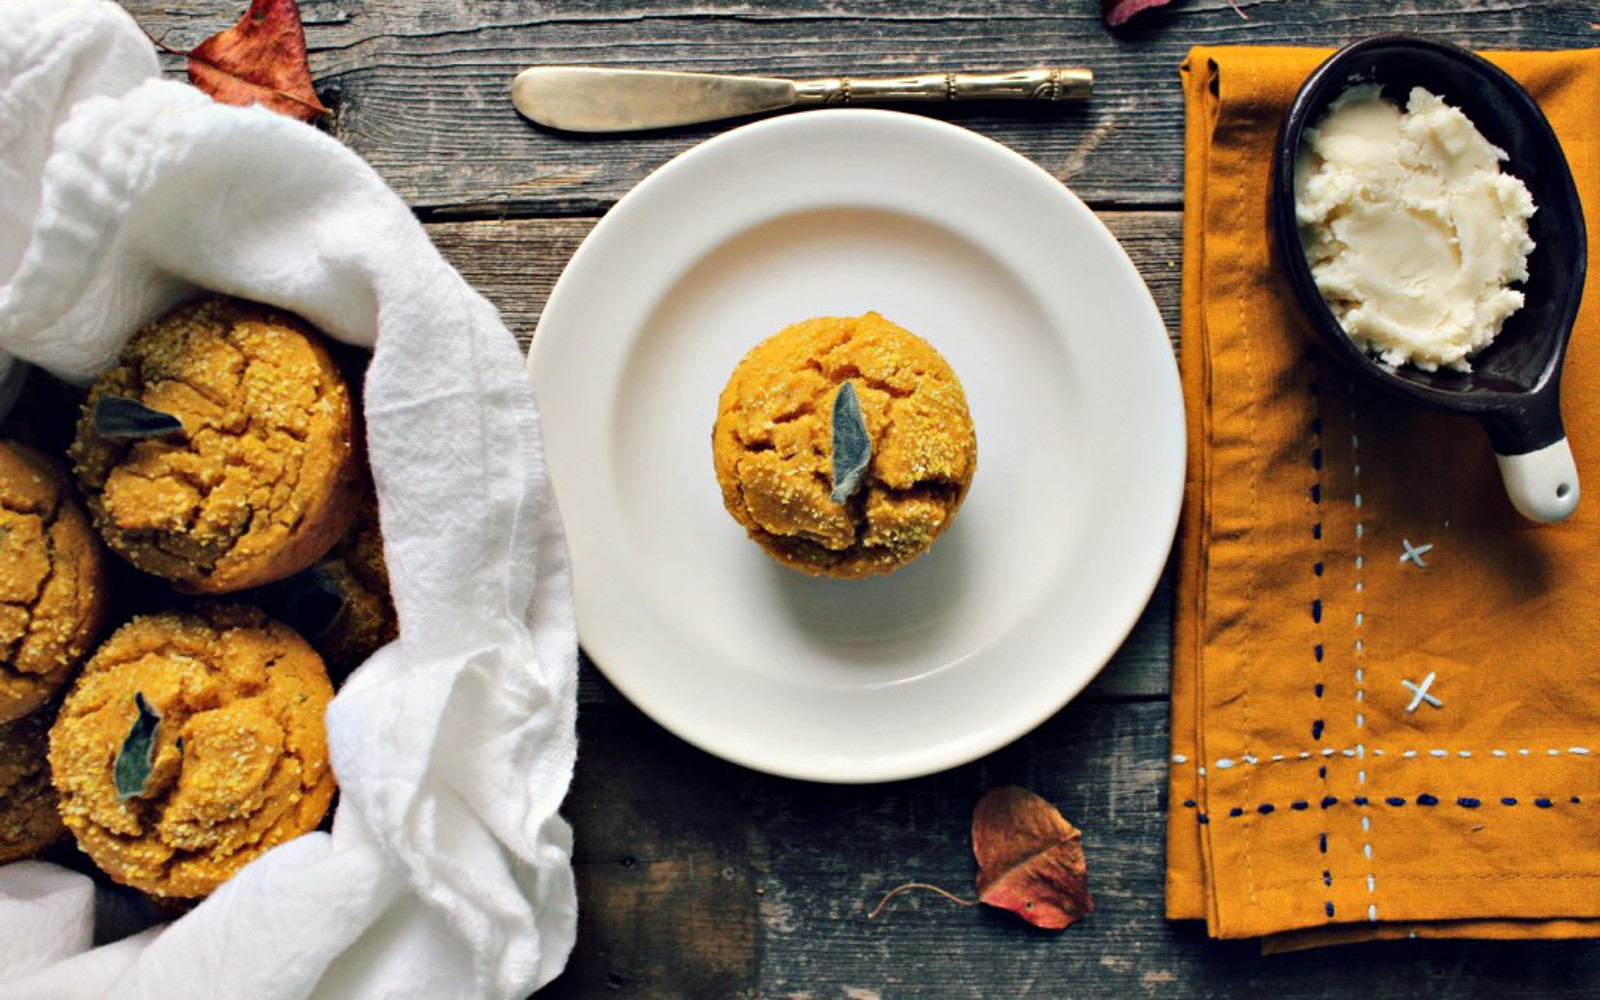 Vegan gluten-free Sweet Potato and Sage Corn Muffins topped with sage